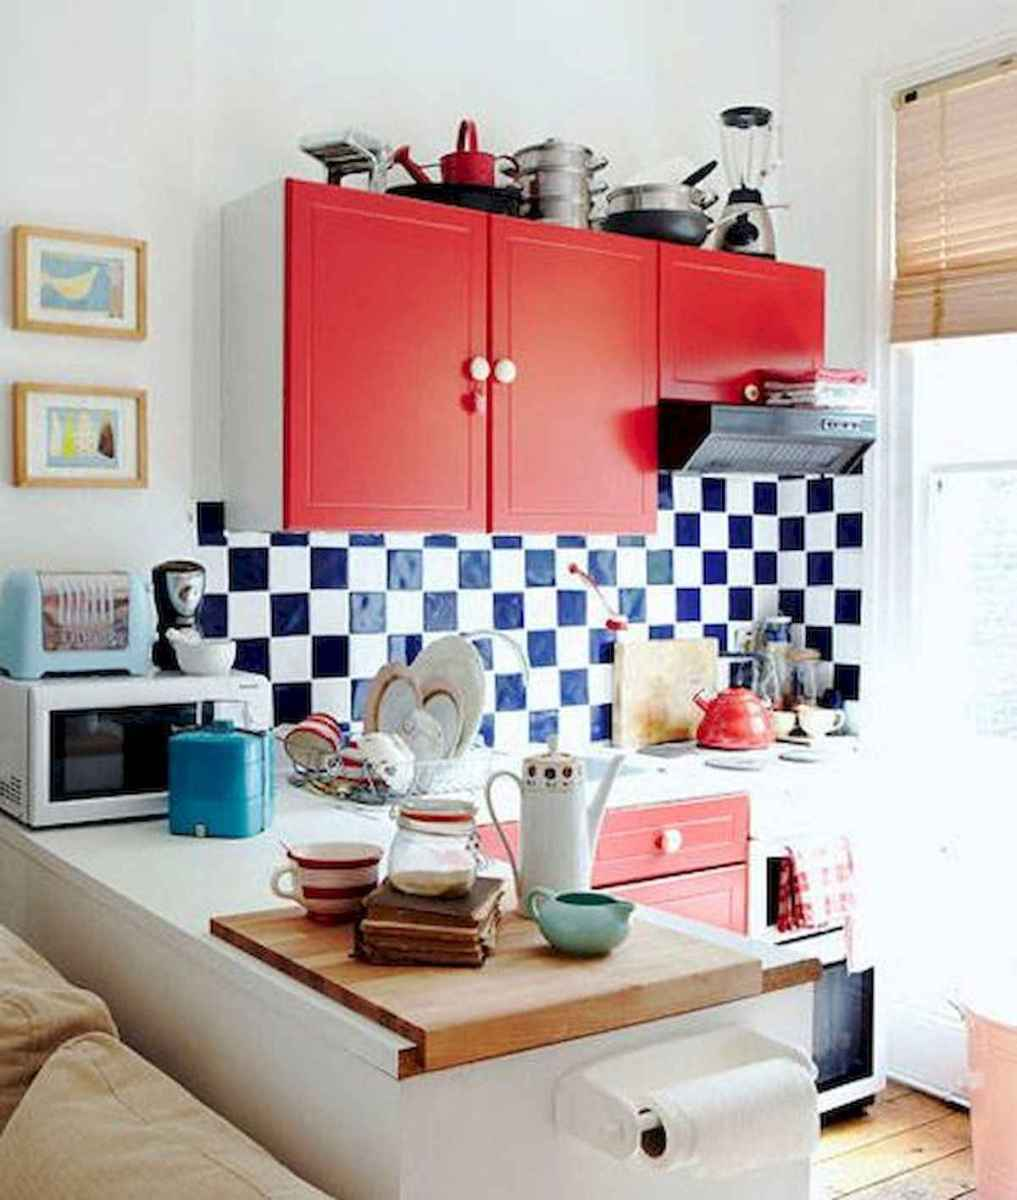 80+ Favorite Colorful Kitchen Decor Ideas And Remodel for Summer Project (76)